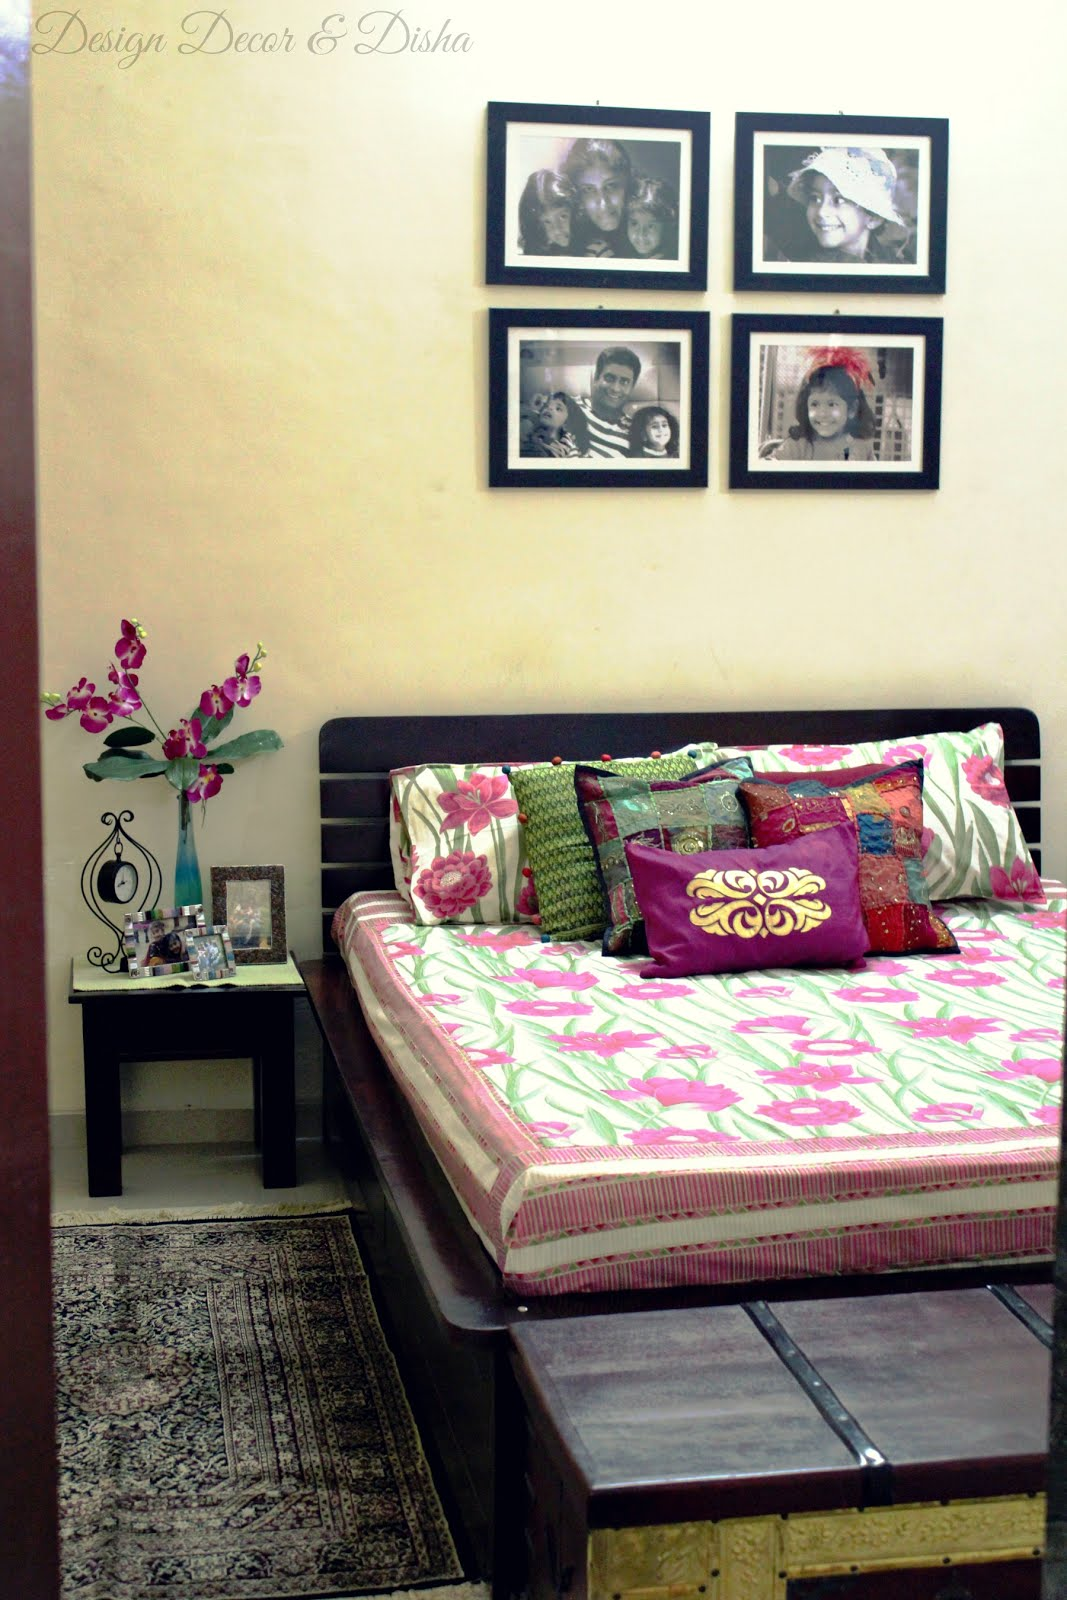 Design decor disha an indian design decor blog home for Home by decor